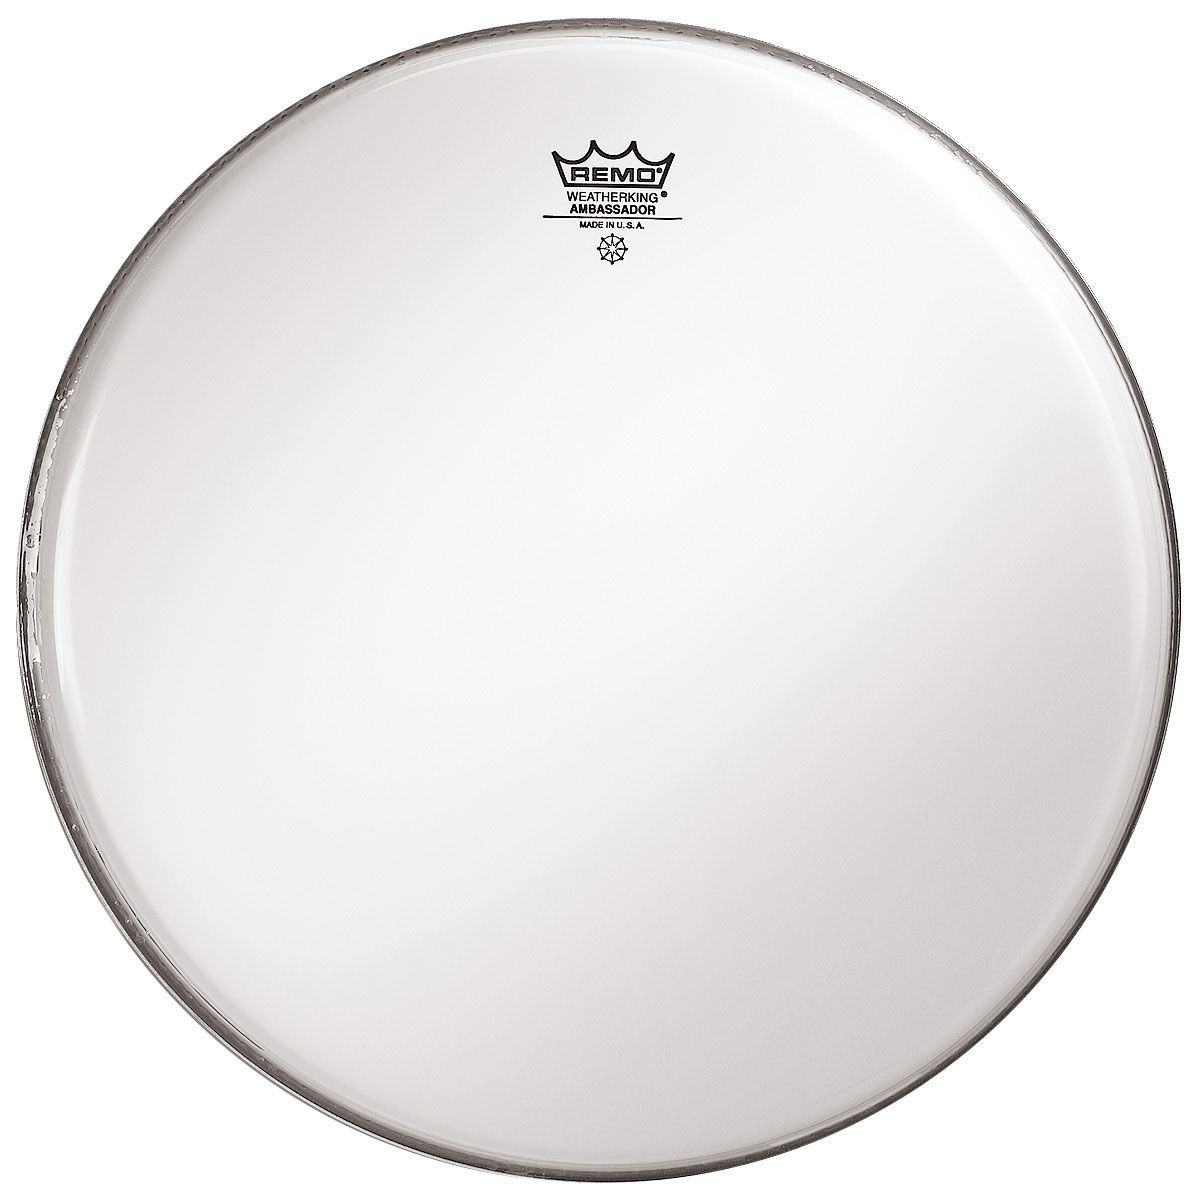 "Remo 32"" Ambassador Smooth White Concert Bass Drum Head"